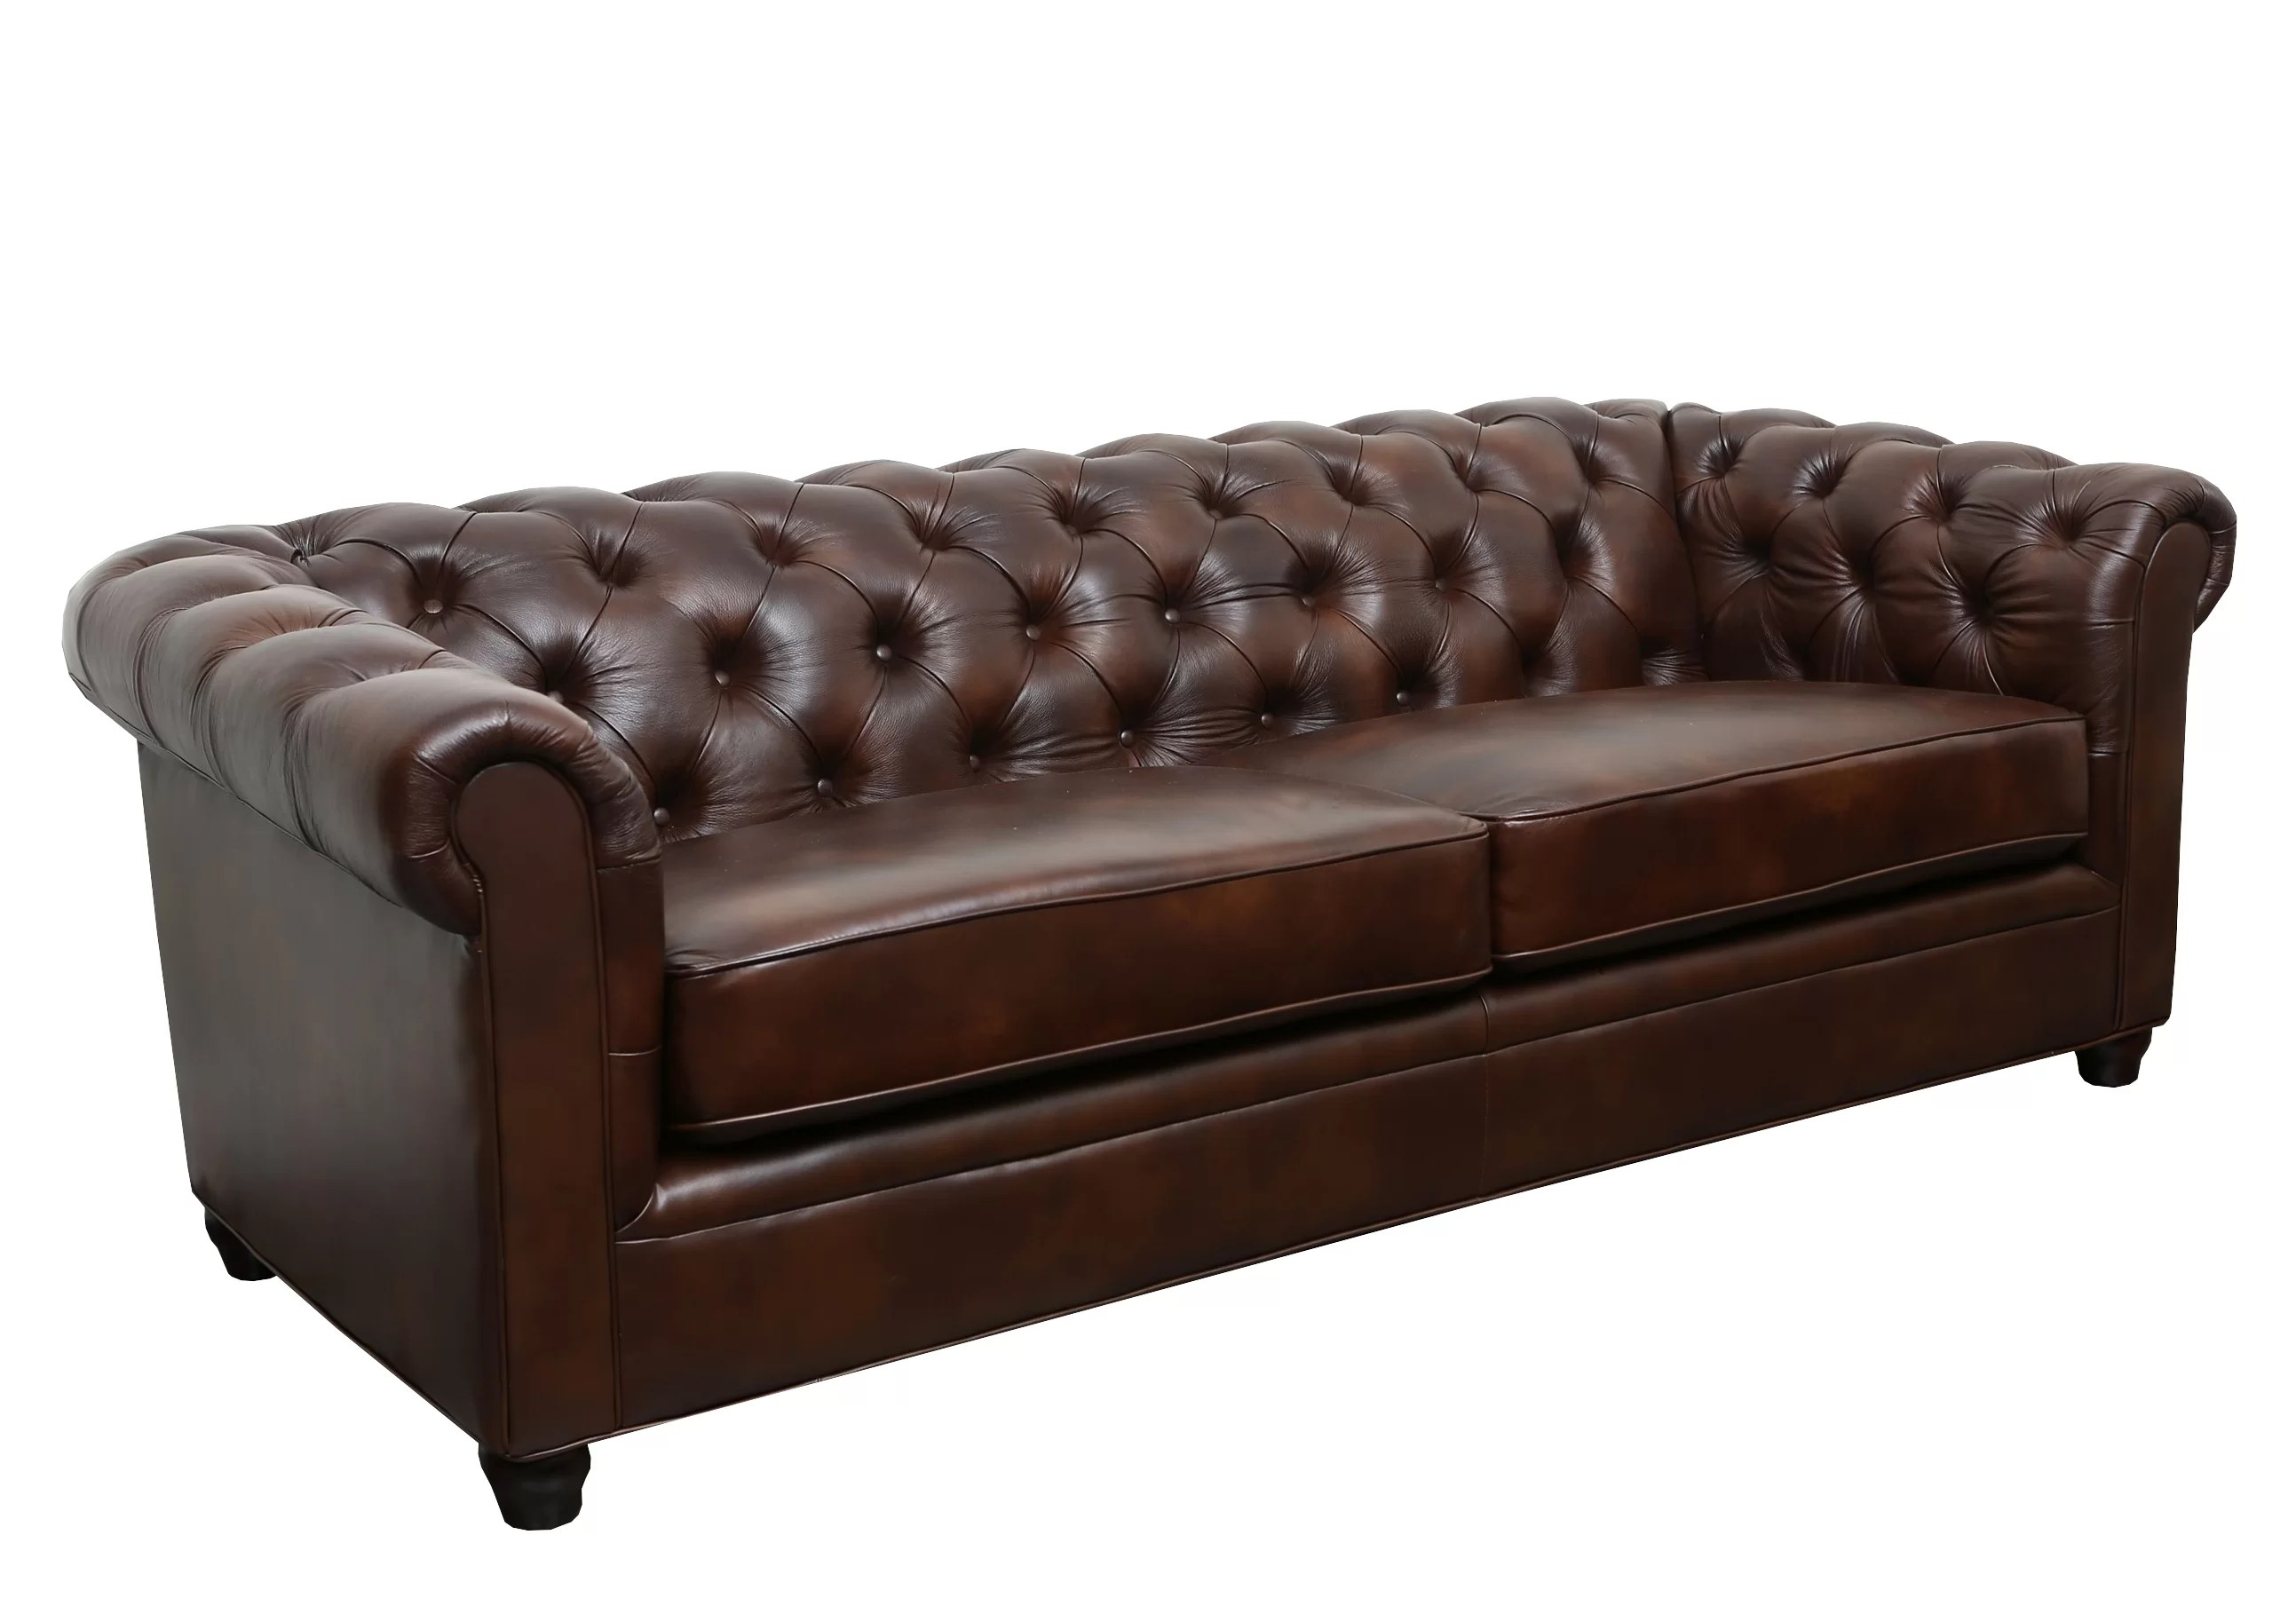 Trent Austin Design Harlem Leather Chesterfield Sofa   Reviews   Wayfair